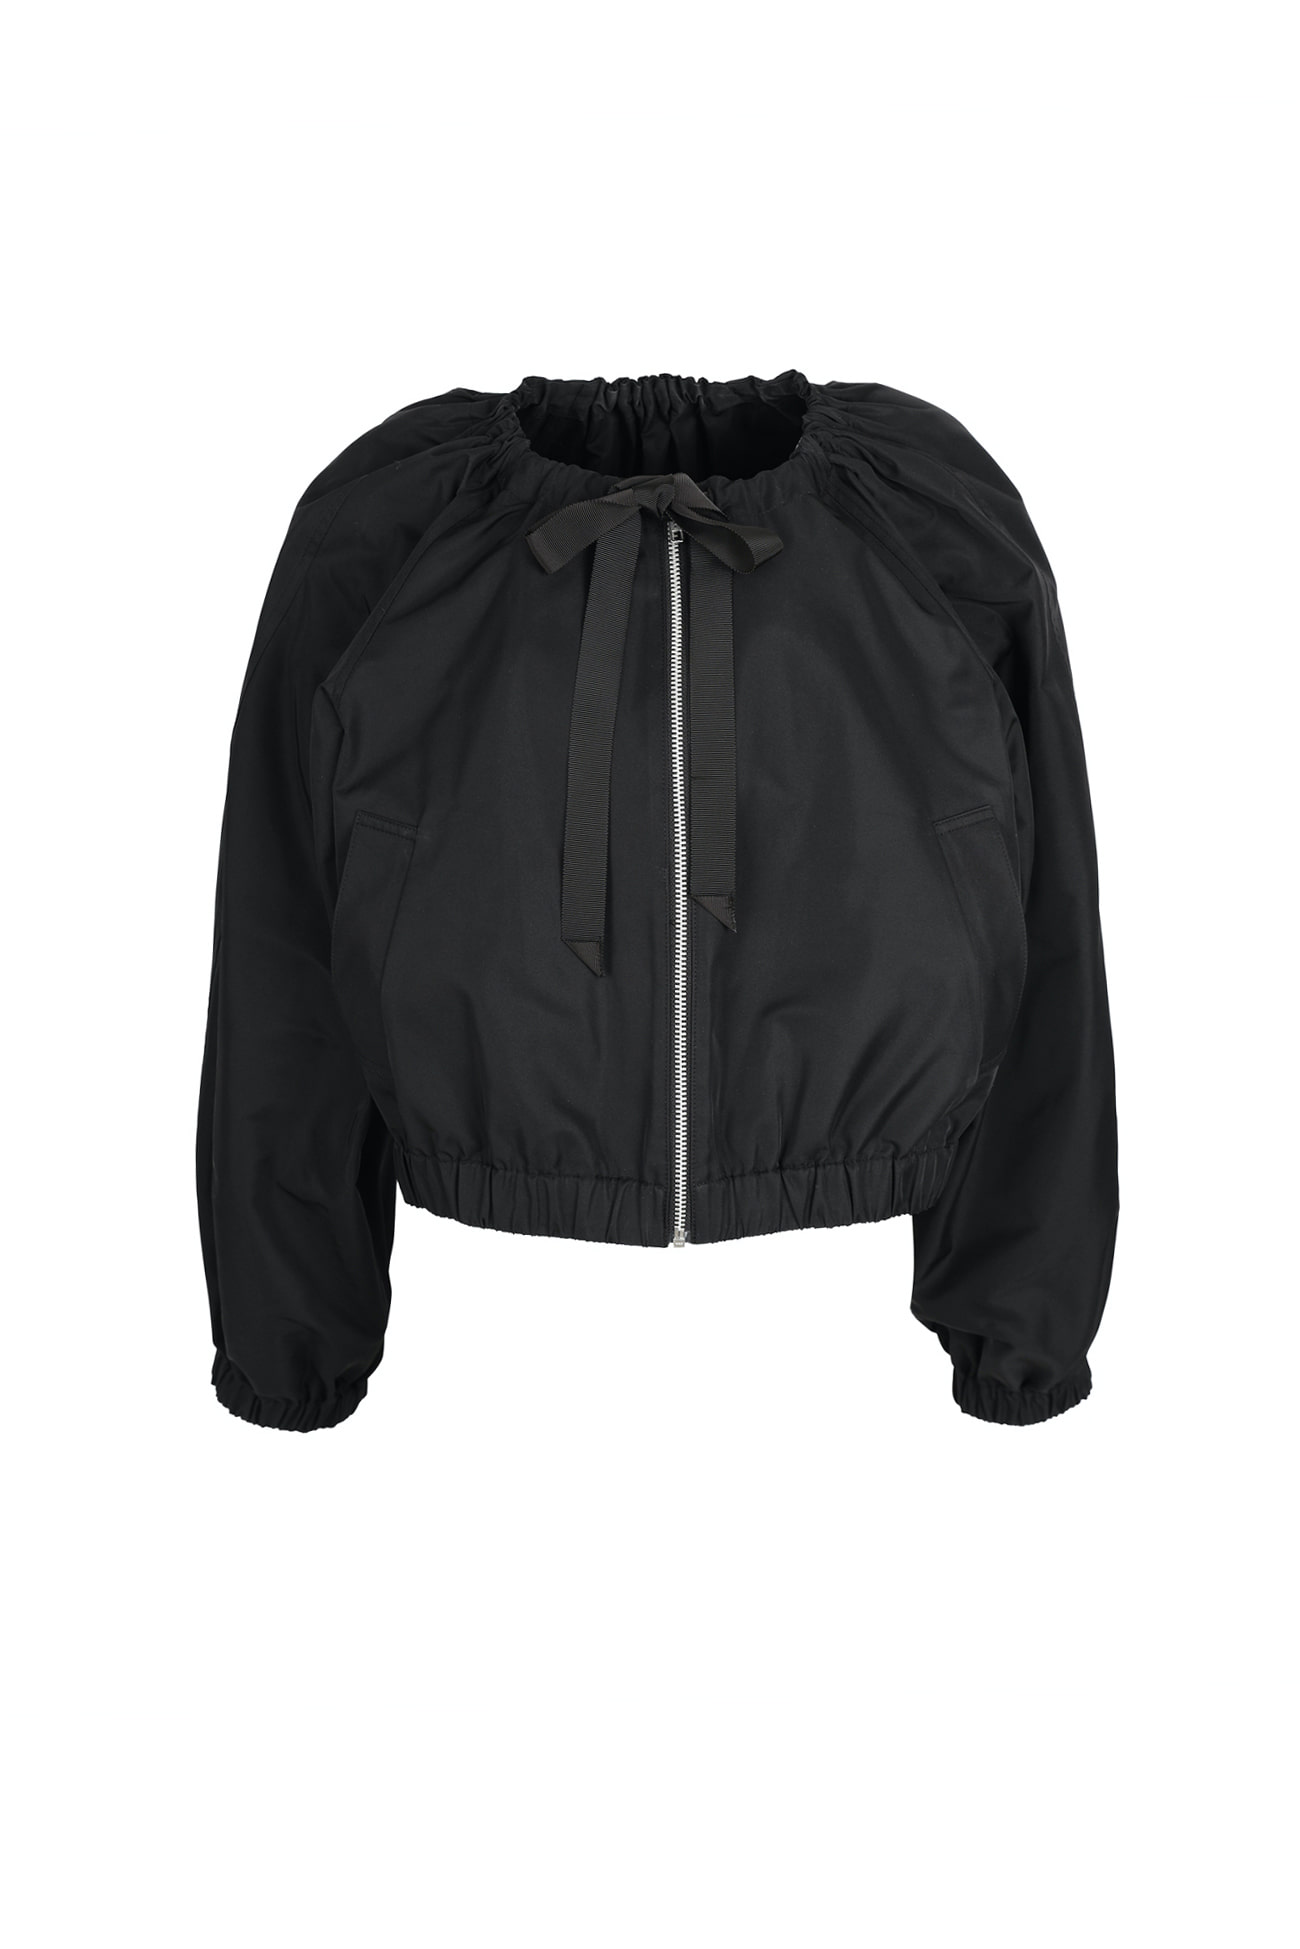 HIGH QUALITY LINE - Black classic bomber Jacket (2차 Reorder)